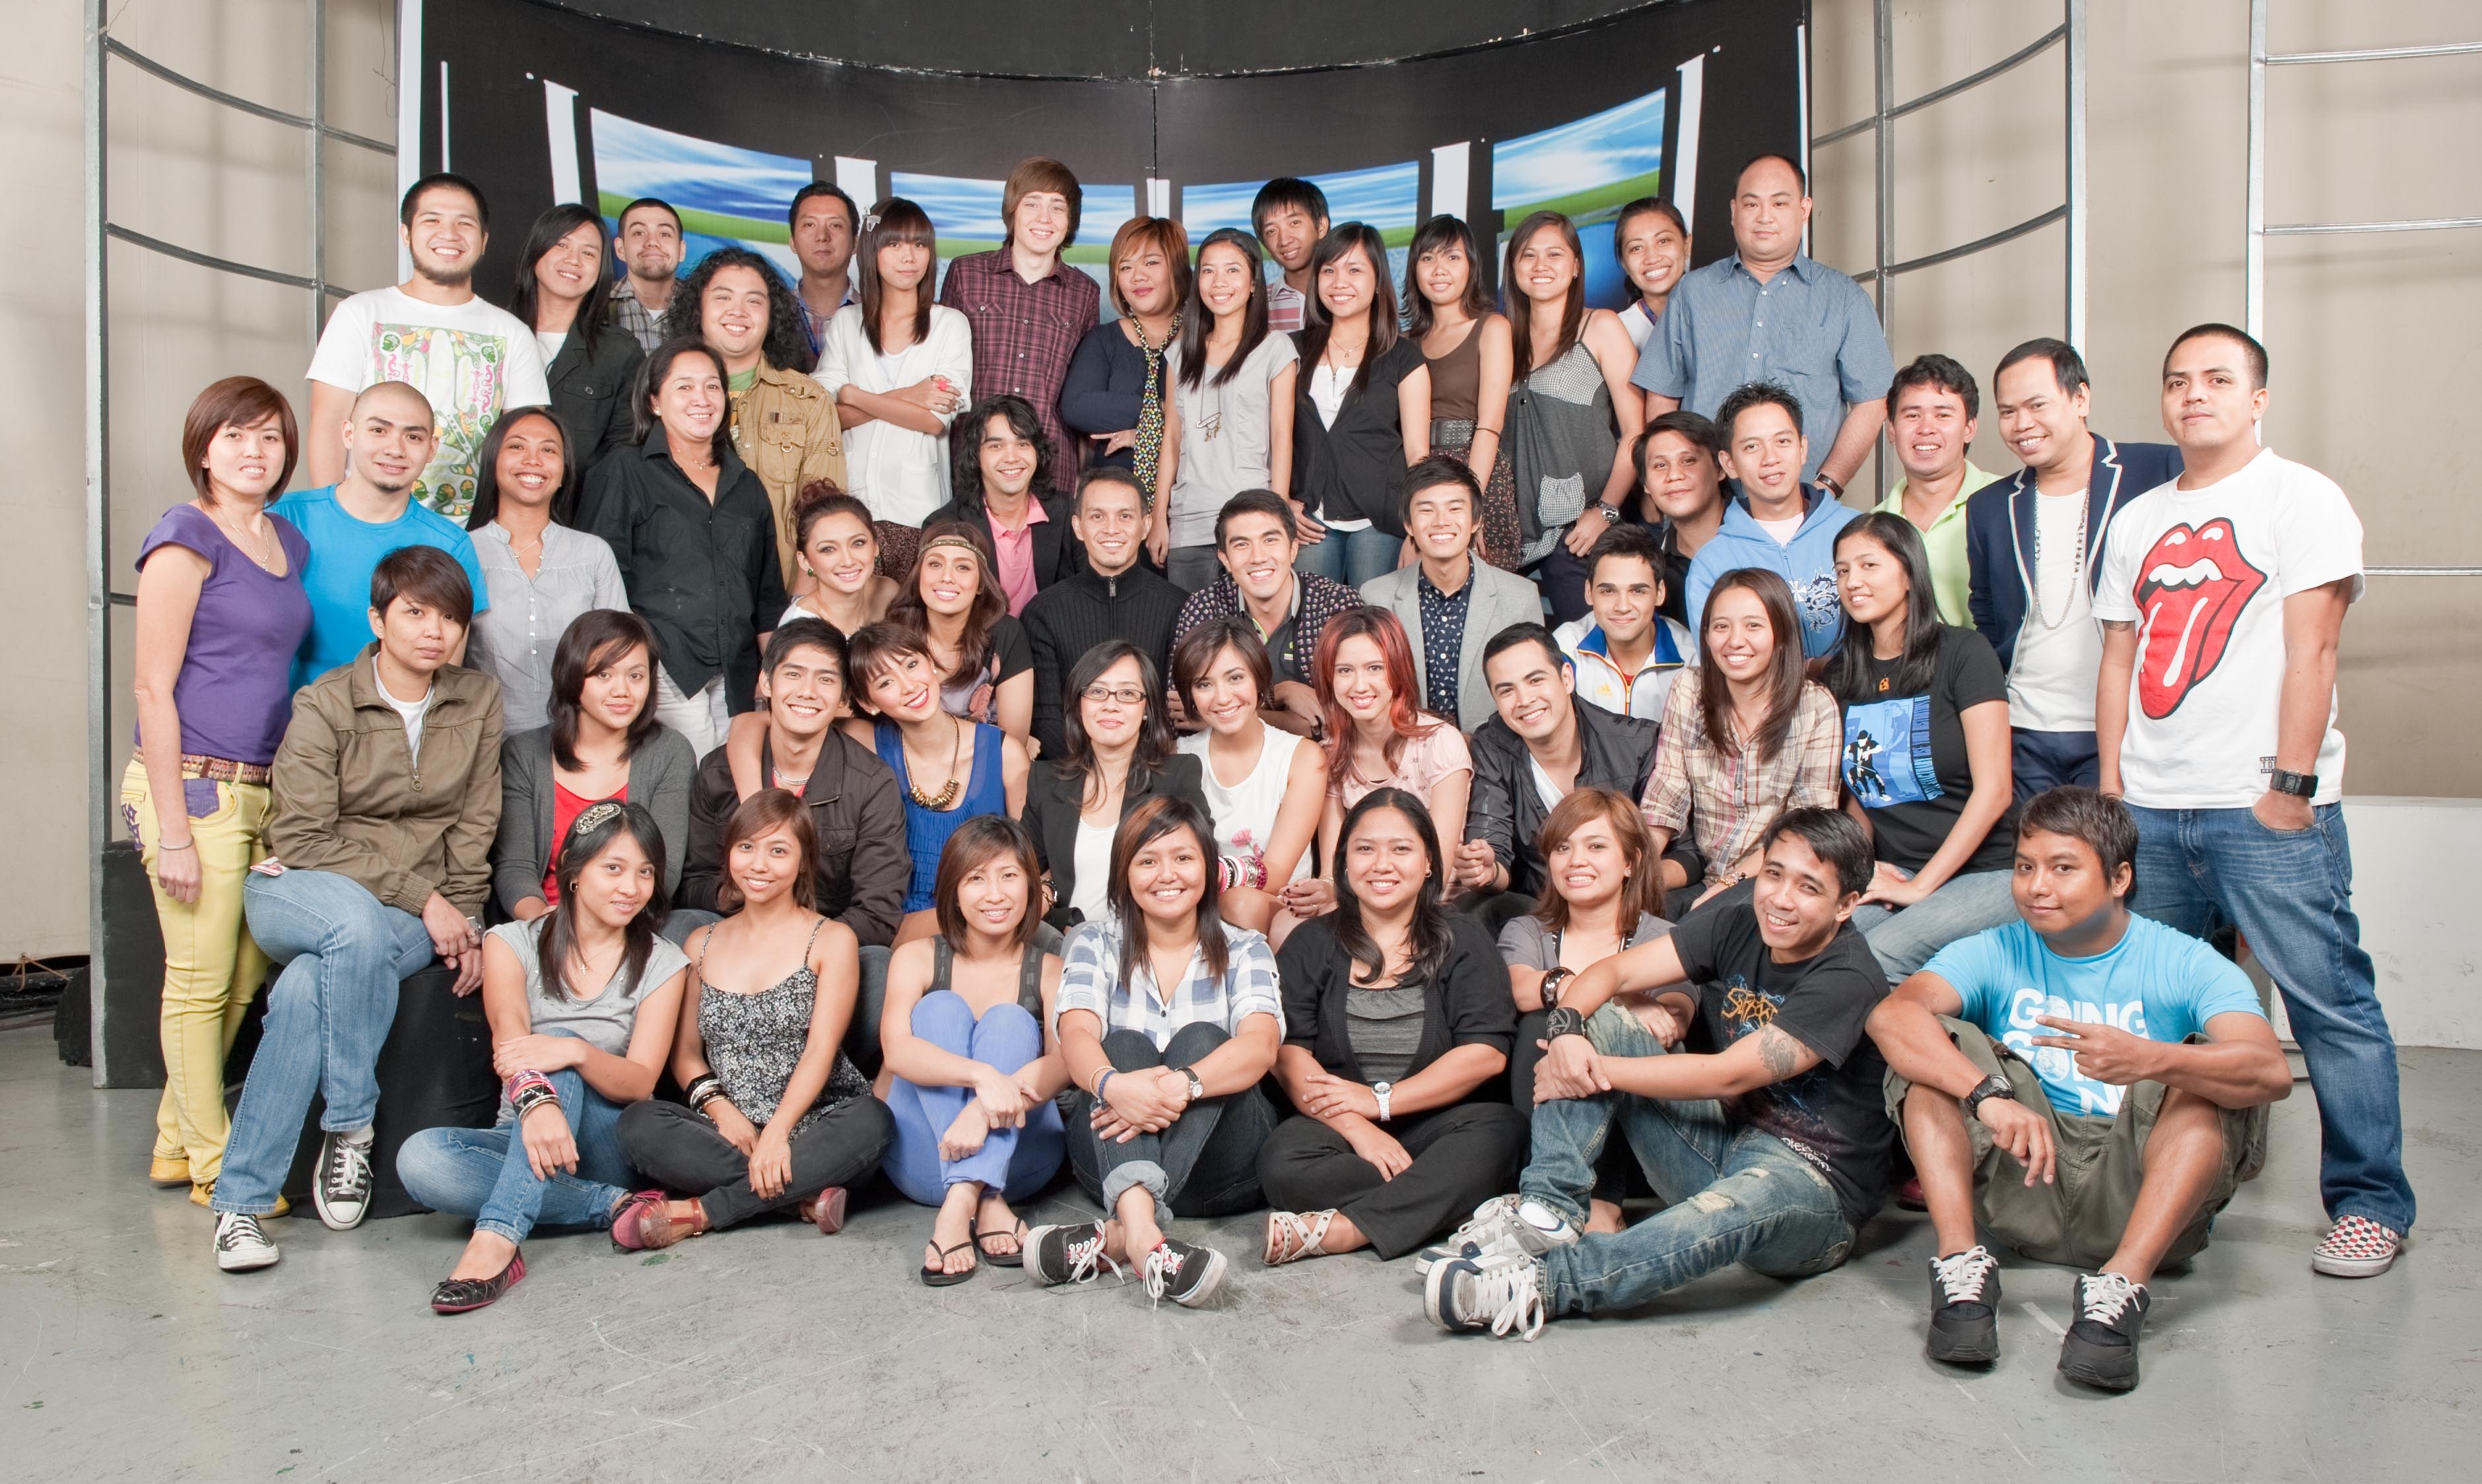 Channel head Andre Alvarez (3rd row, 7th from left) and his team at MYX